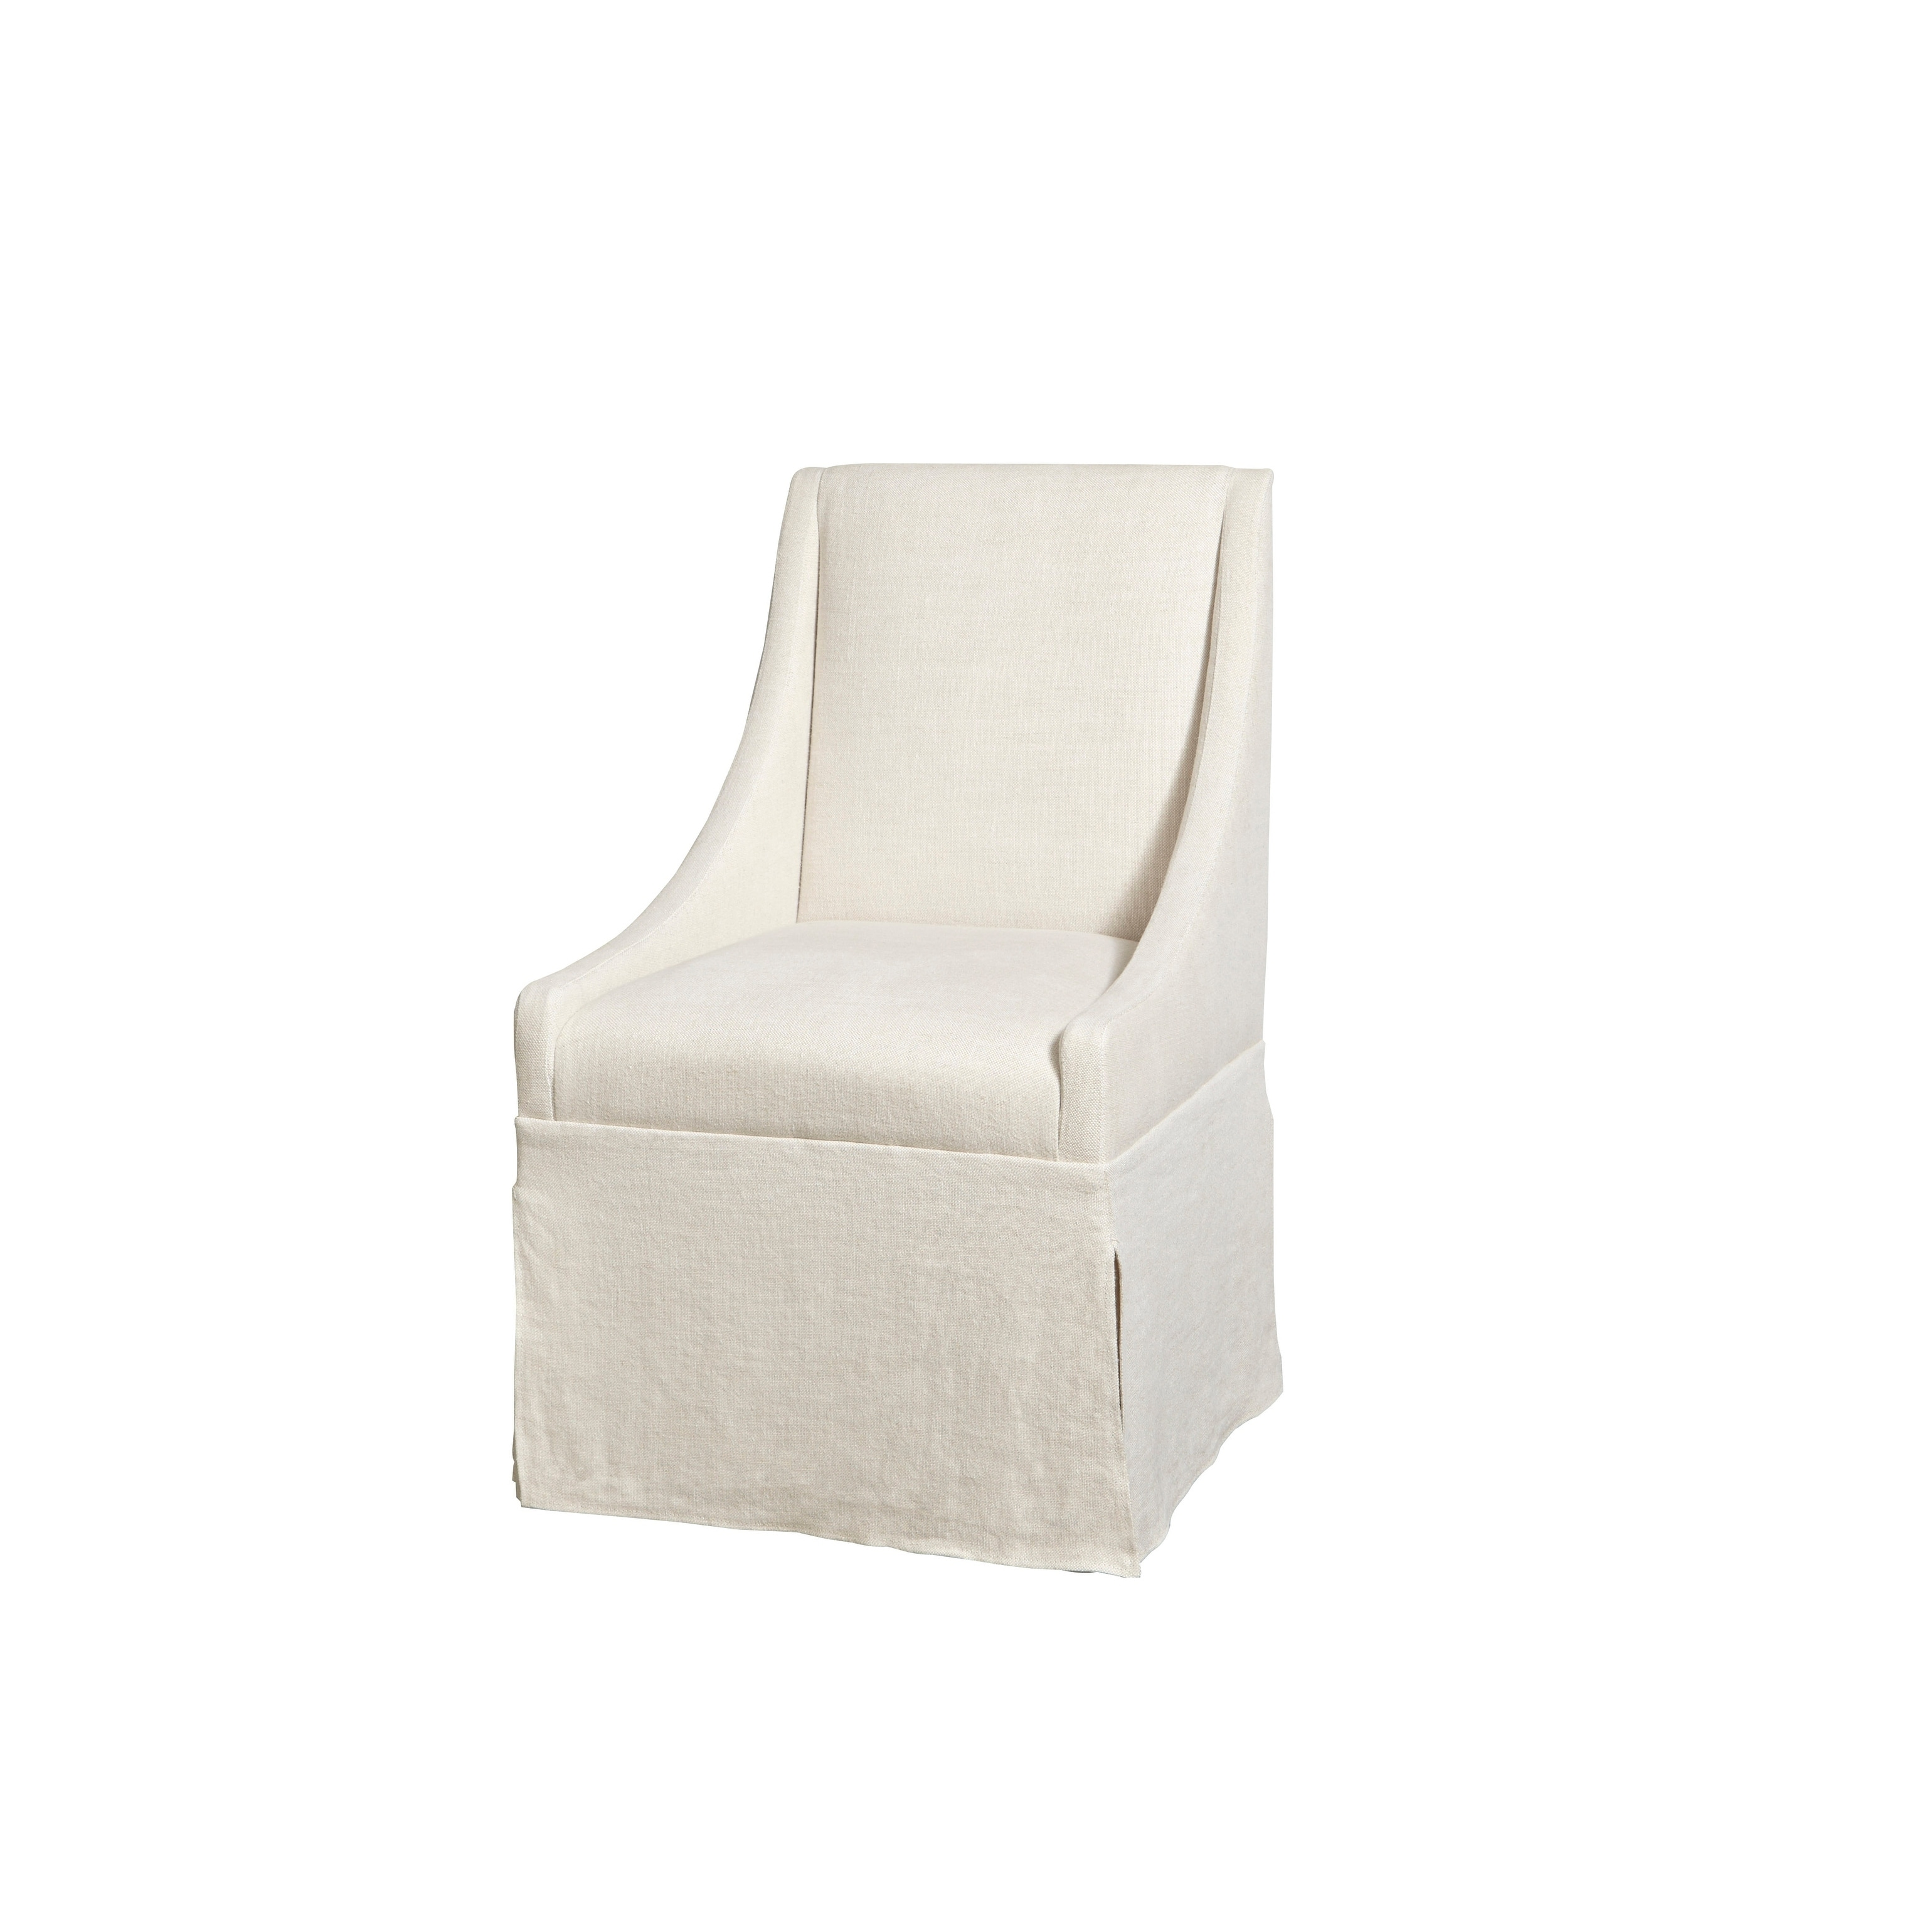 Ivory Townsend Caster Dining Chair